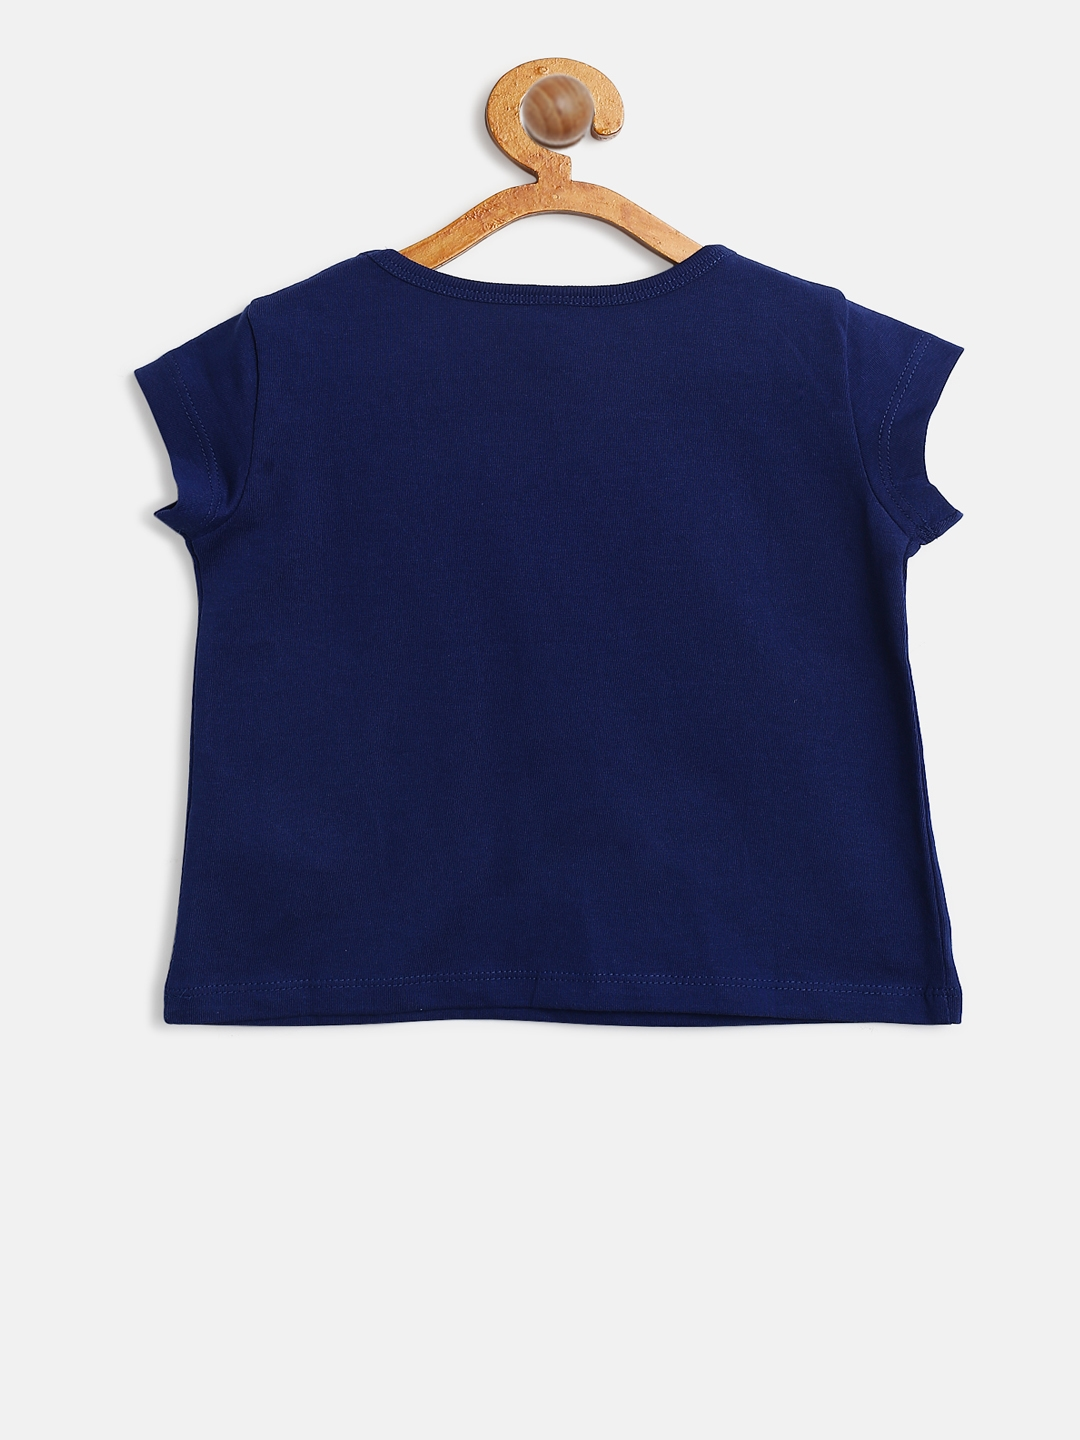 e619e40584a675 Buy United Colors Of Benetton Girls Navy Blue Printed Round Neck T ...